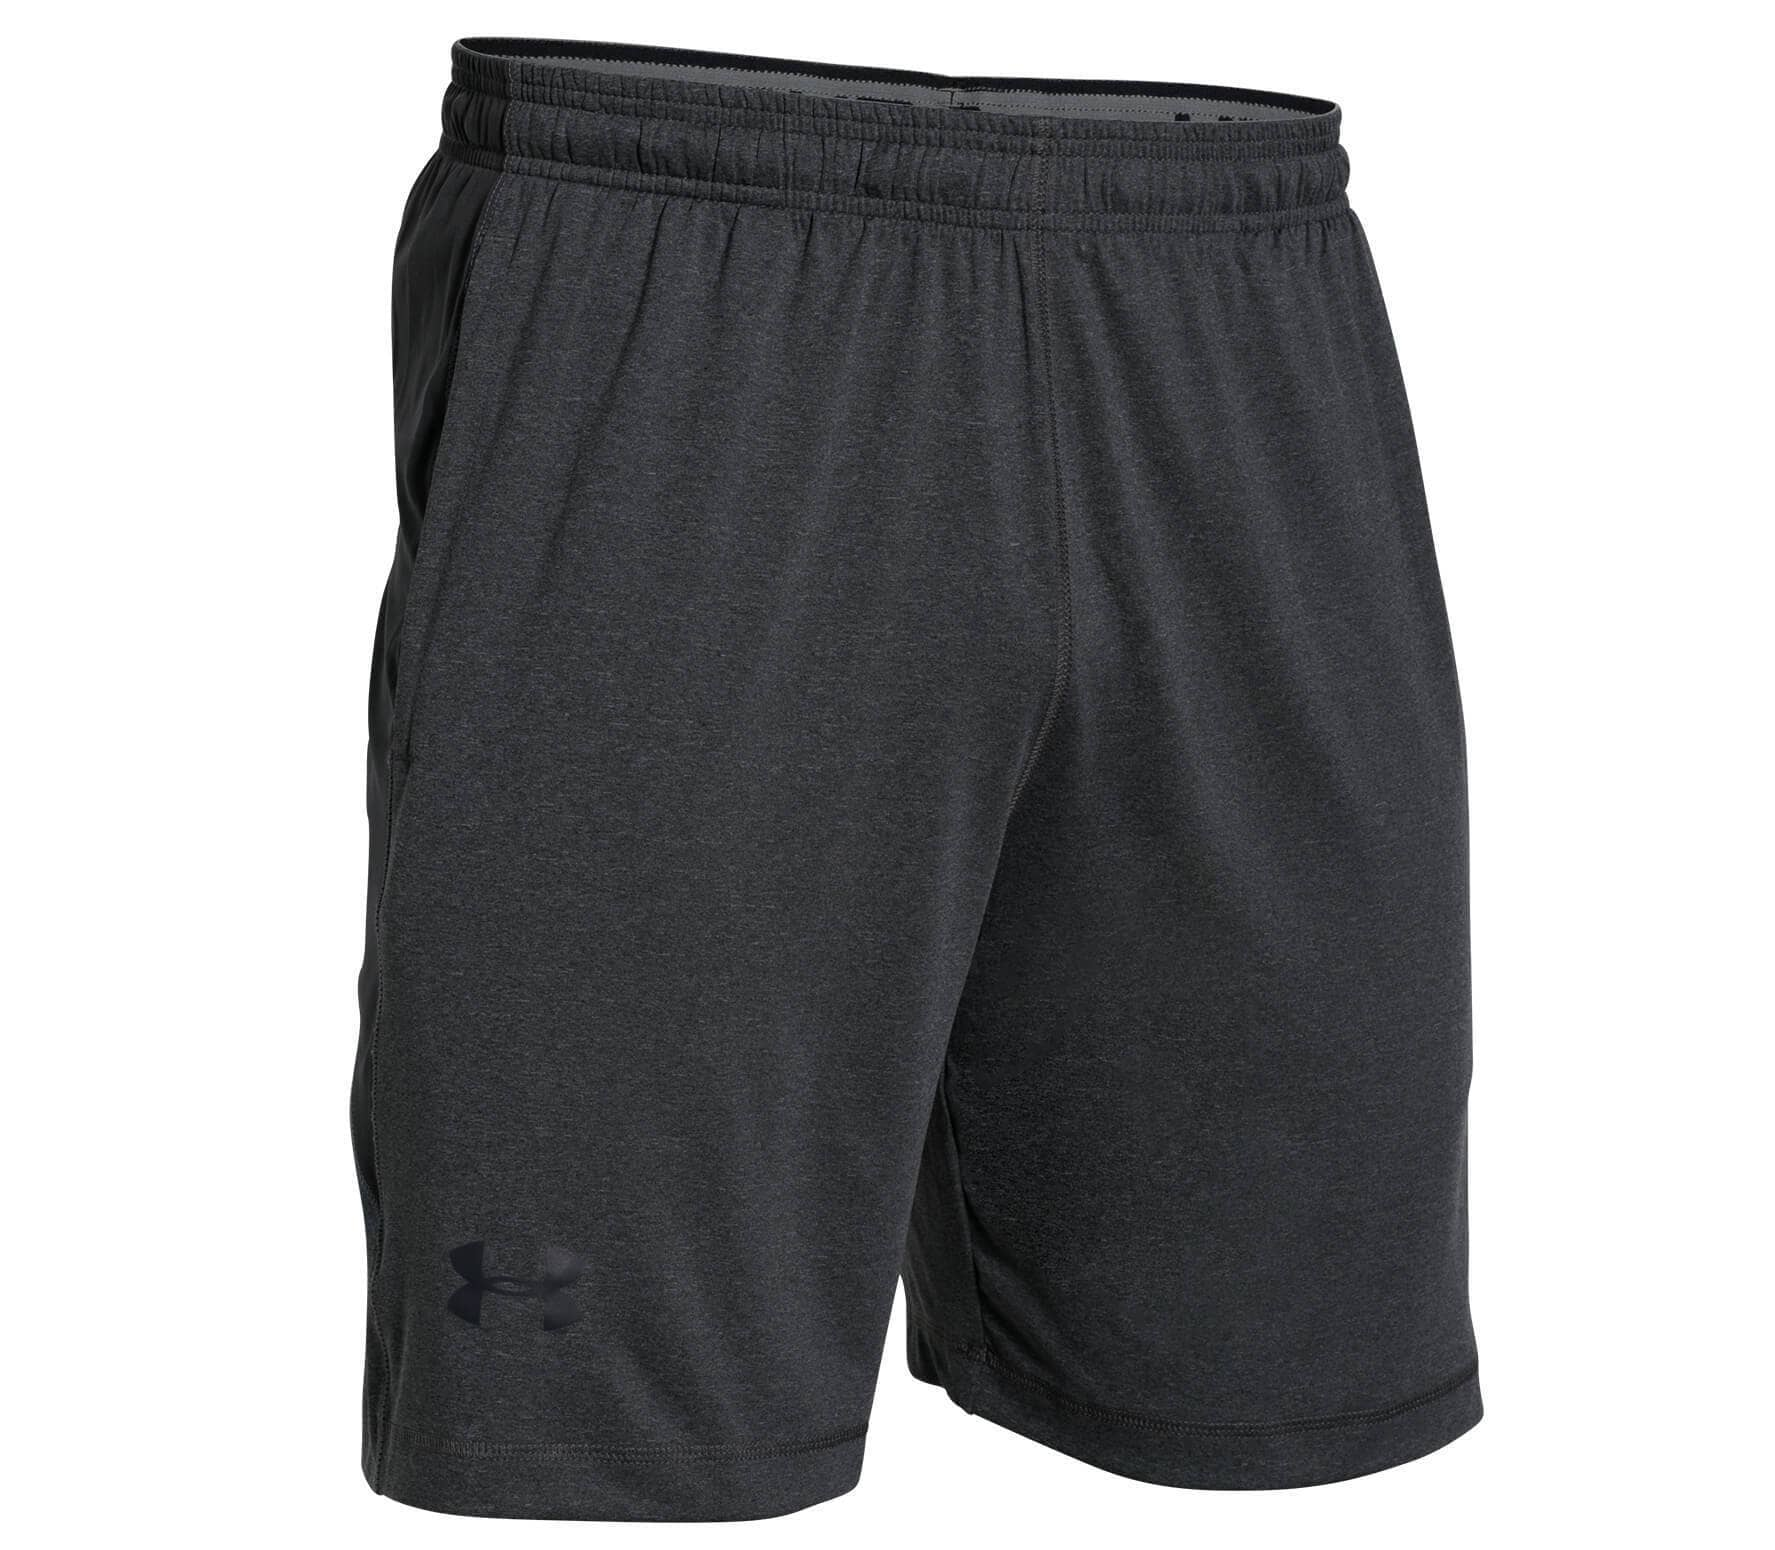 c269b64b5 Under Armour - Raid 8 Inch men's tennis shorts (dark grey) - buy it ...